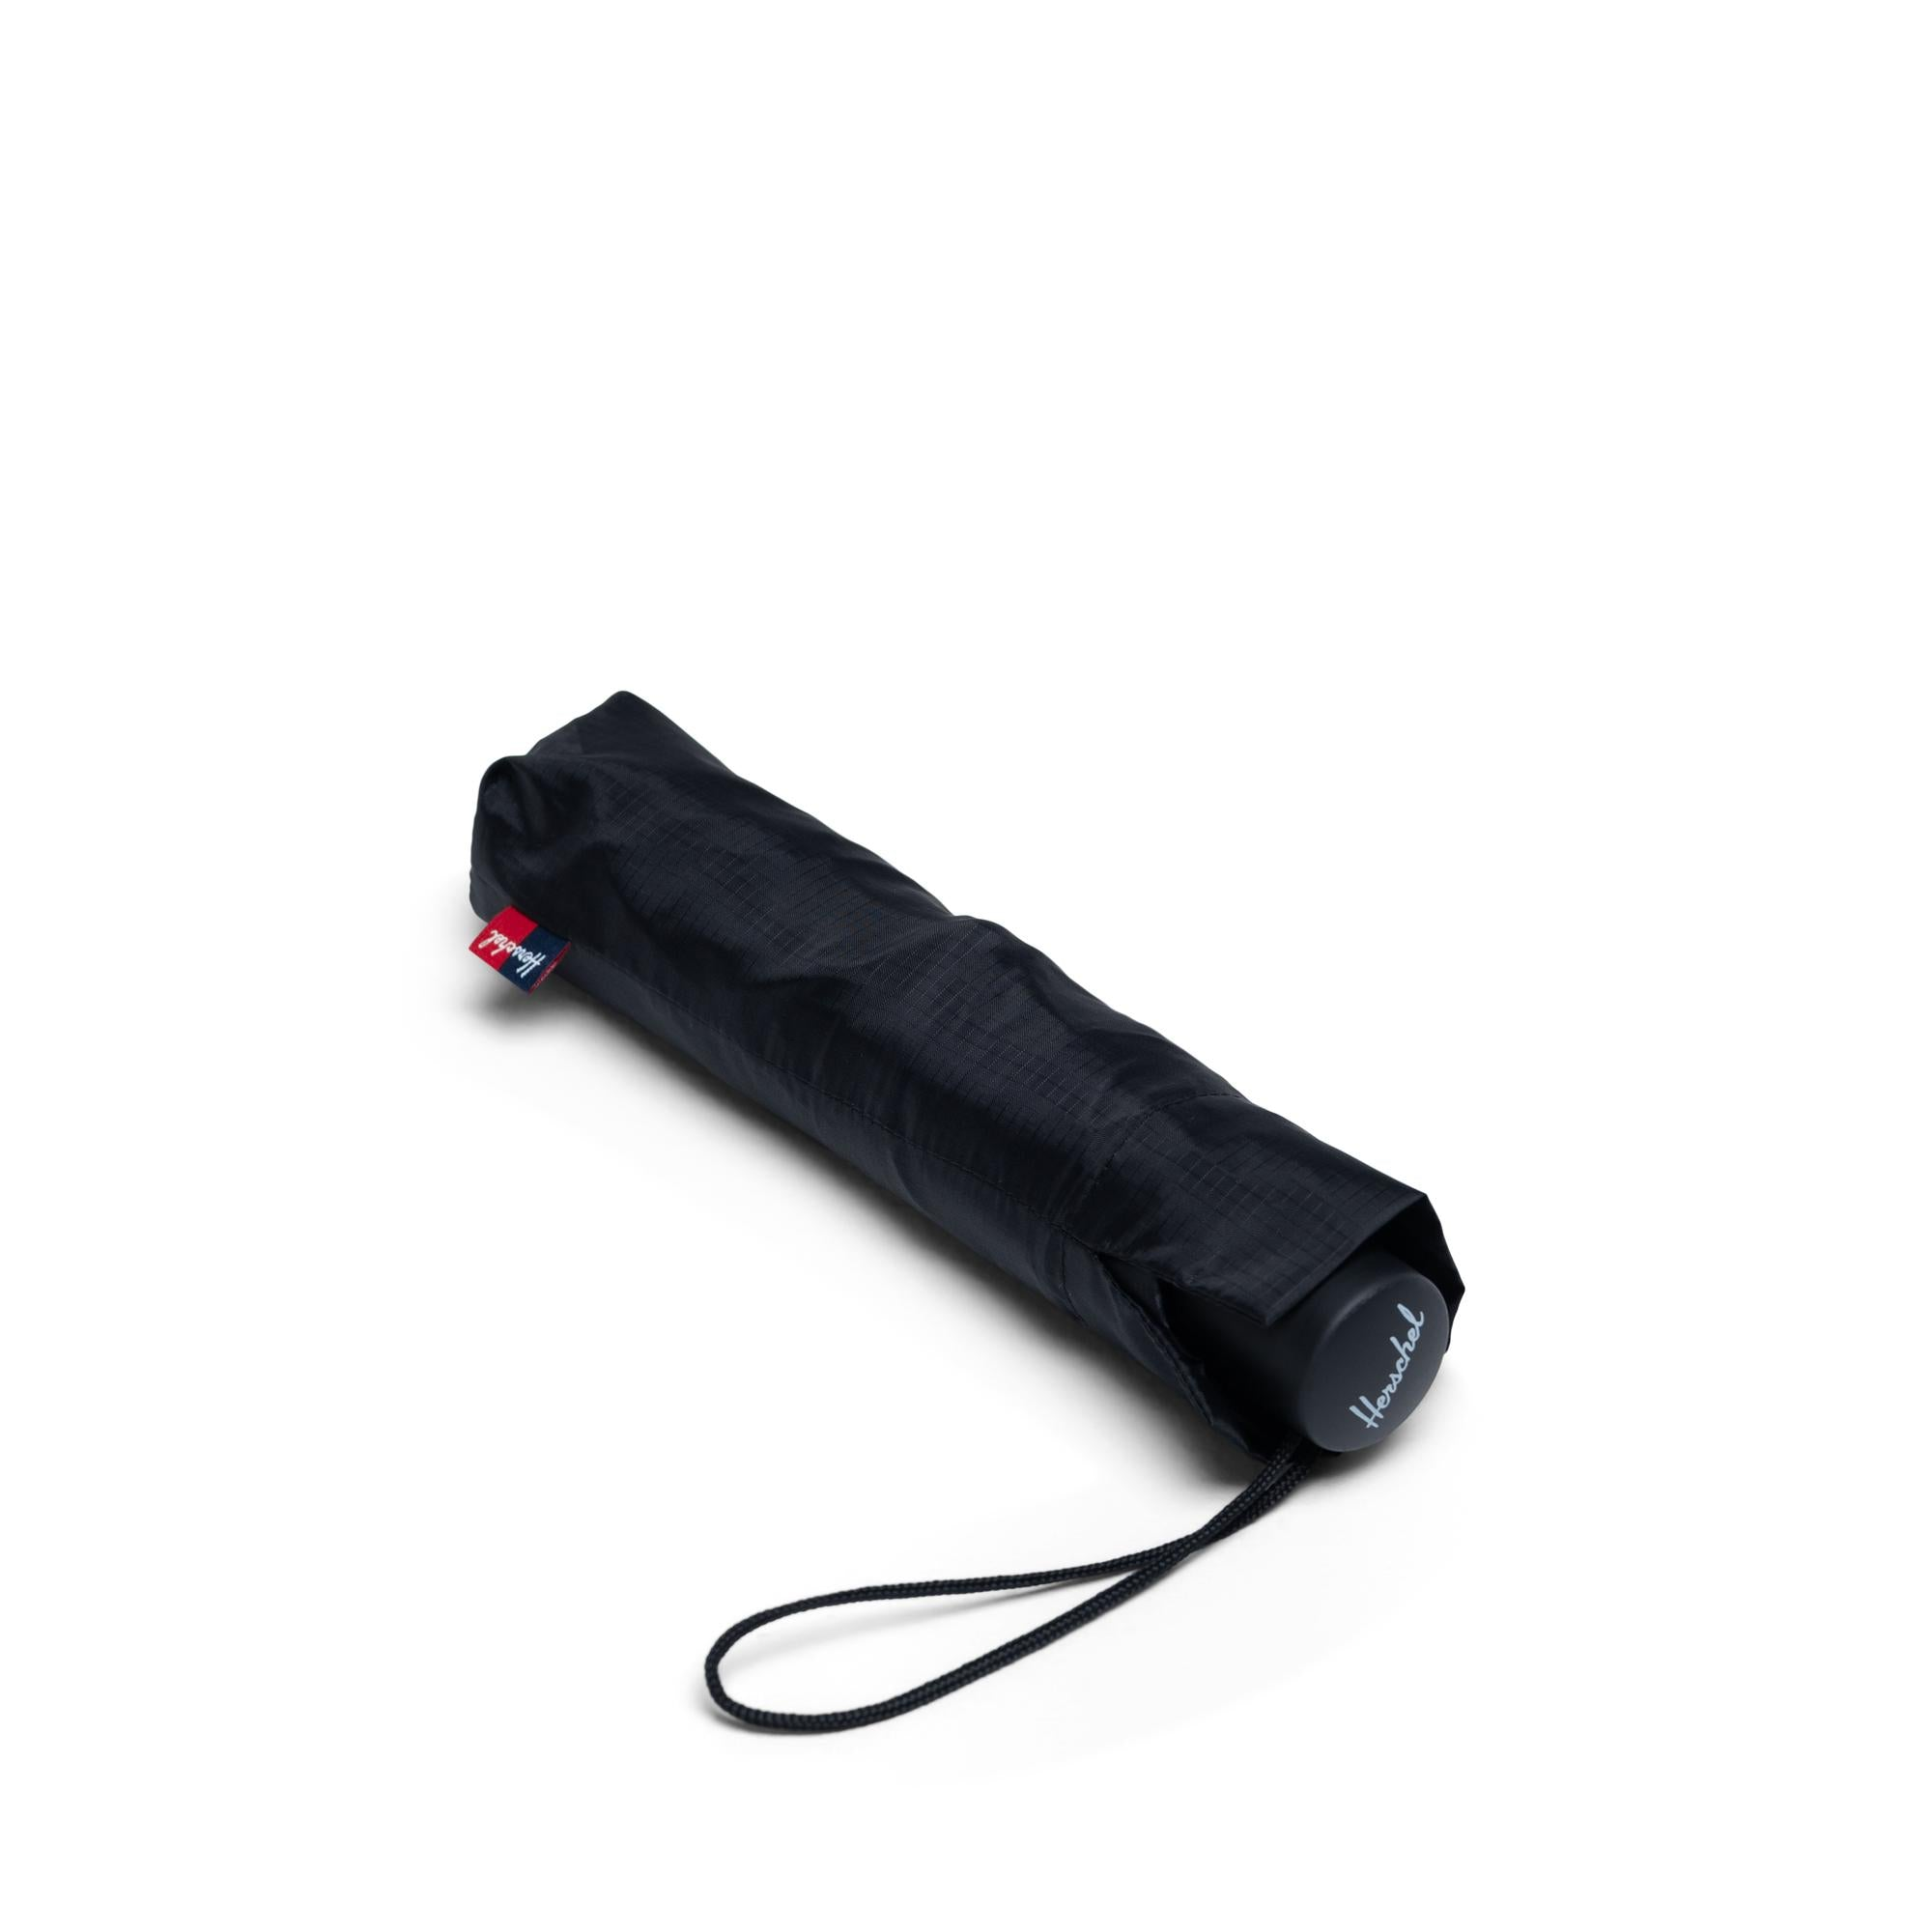 Voyage Compact Umbrella - Black/Black